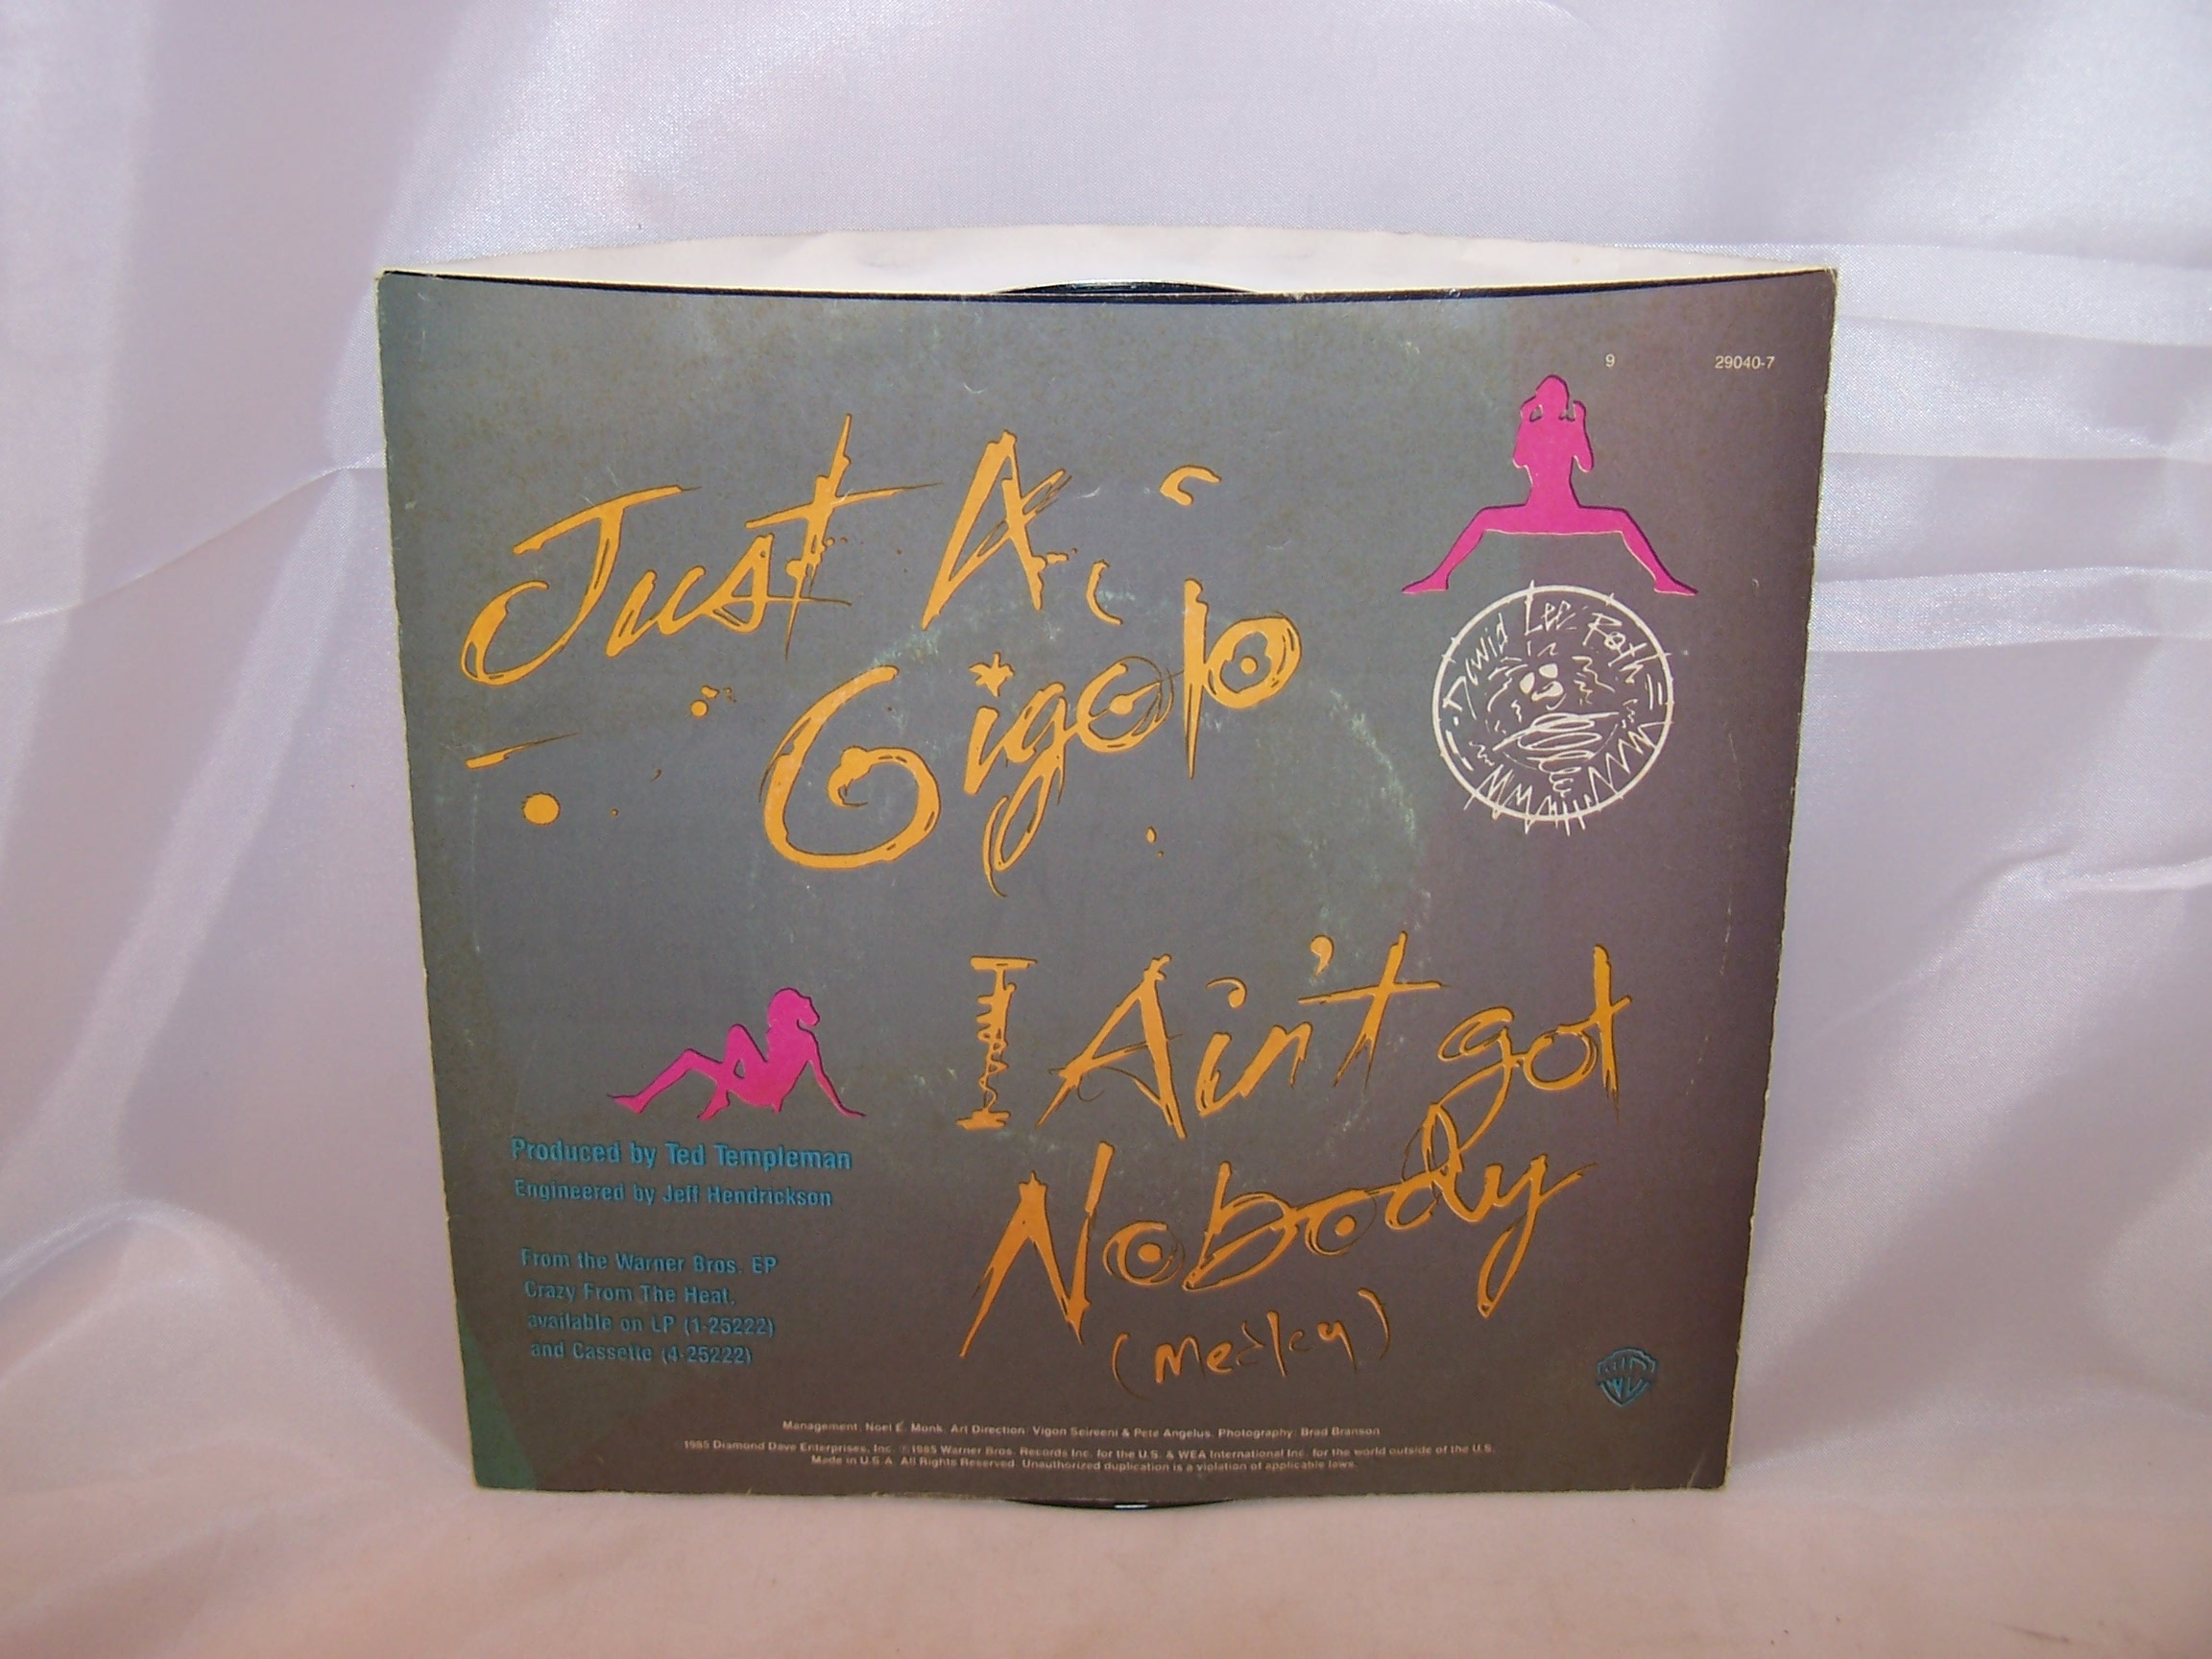 Image 3 of David Lee Roth, Just a Gigolo, 45 RPM Record, 1985